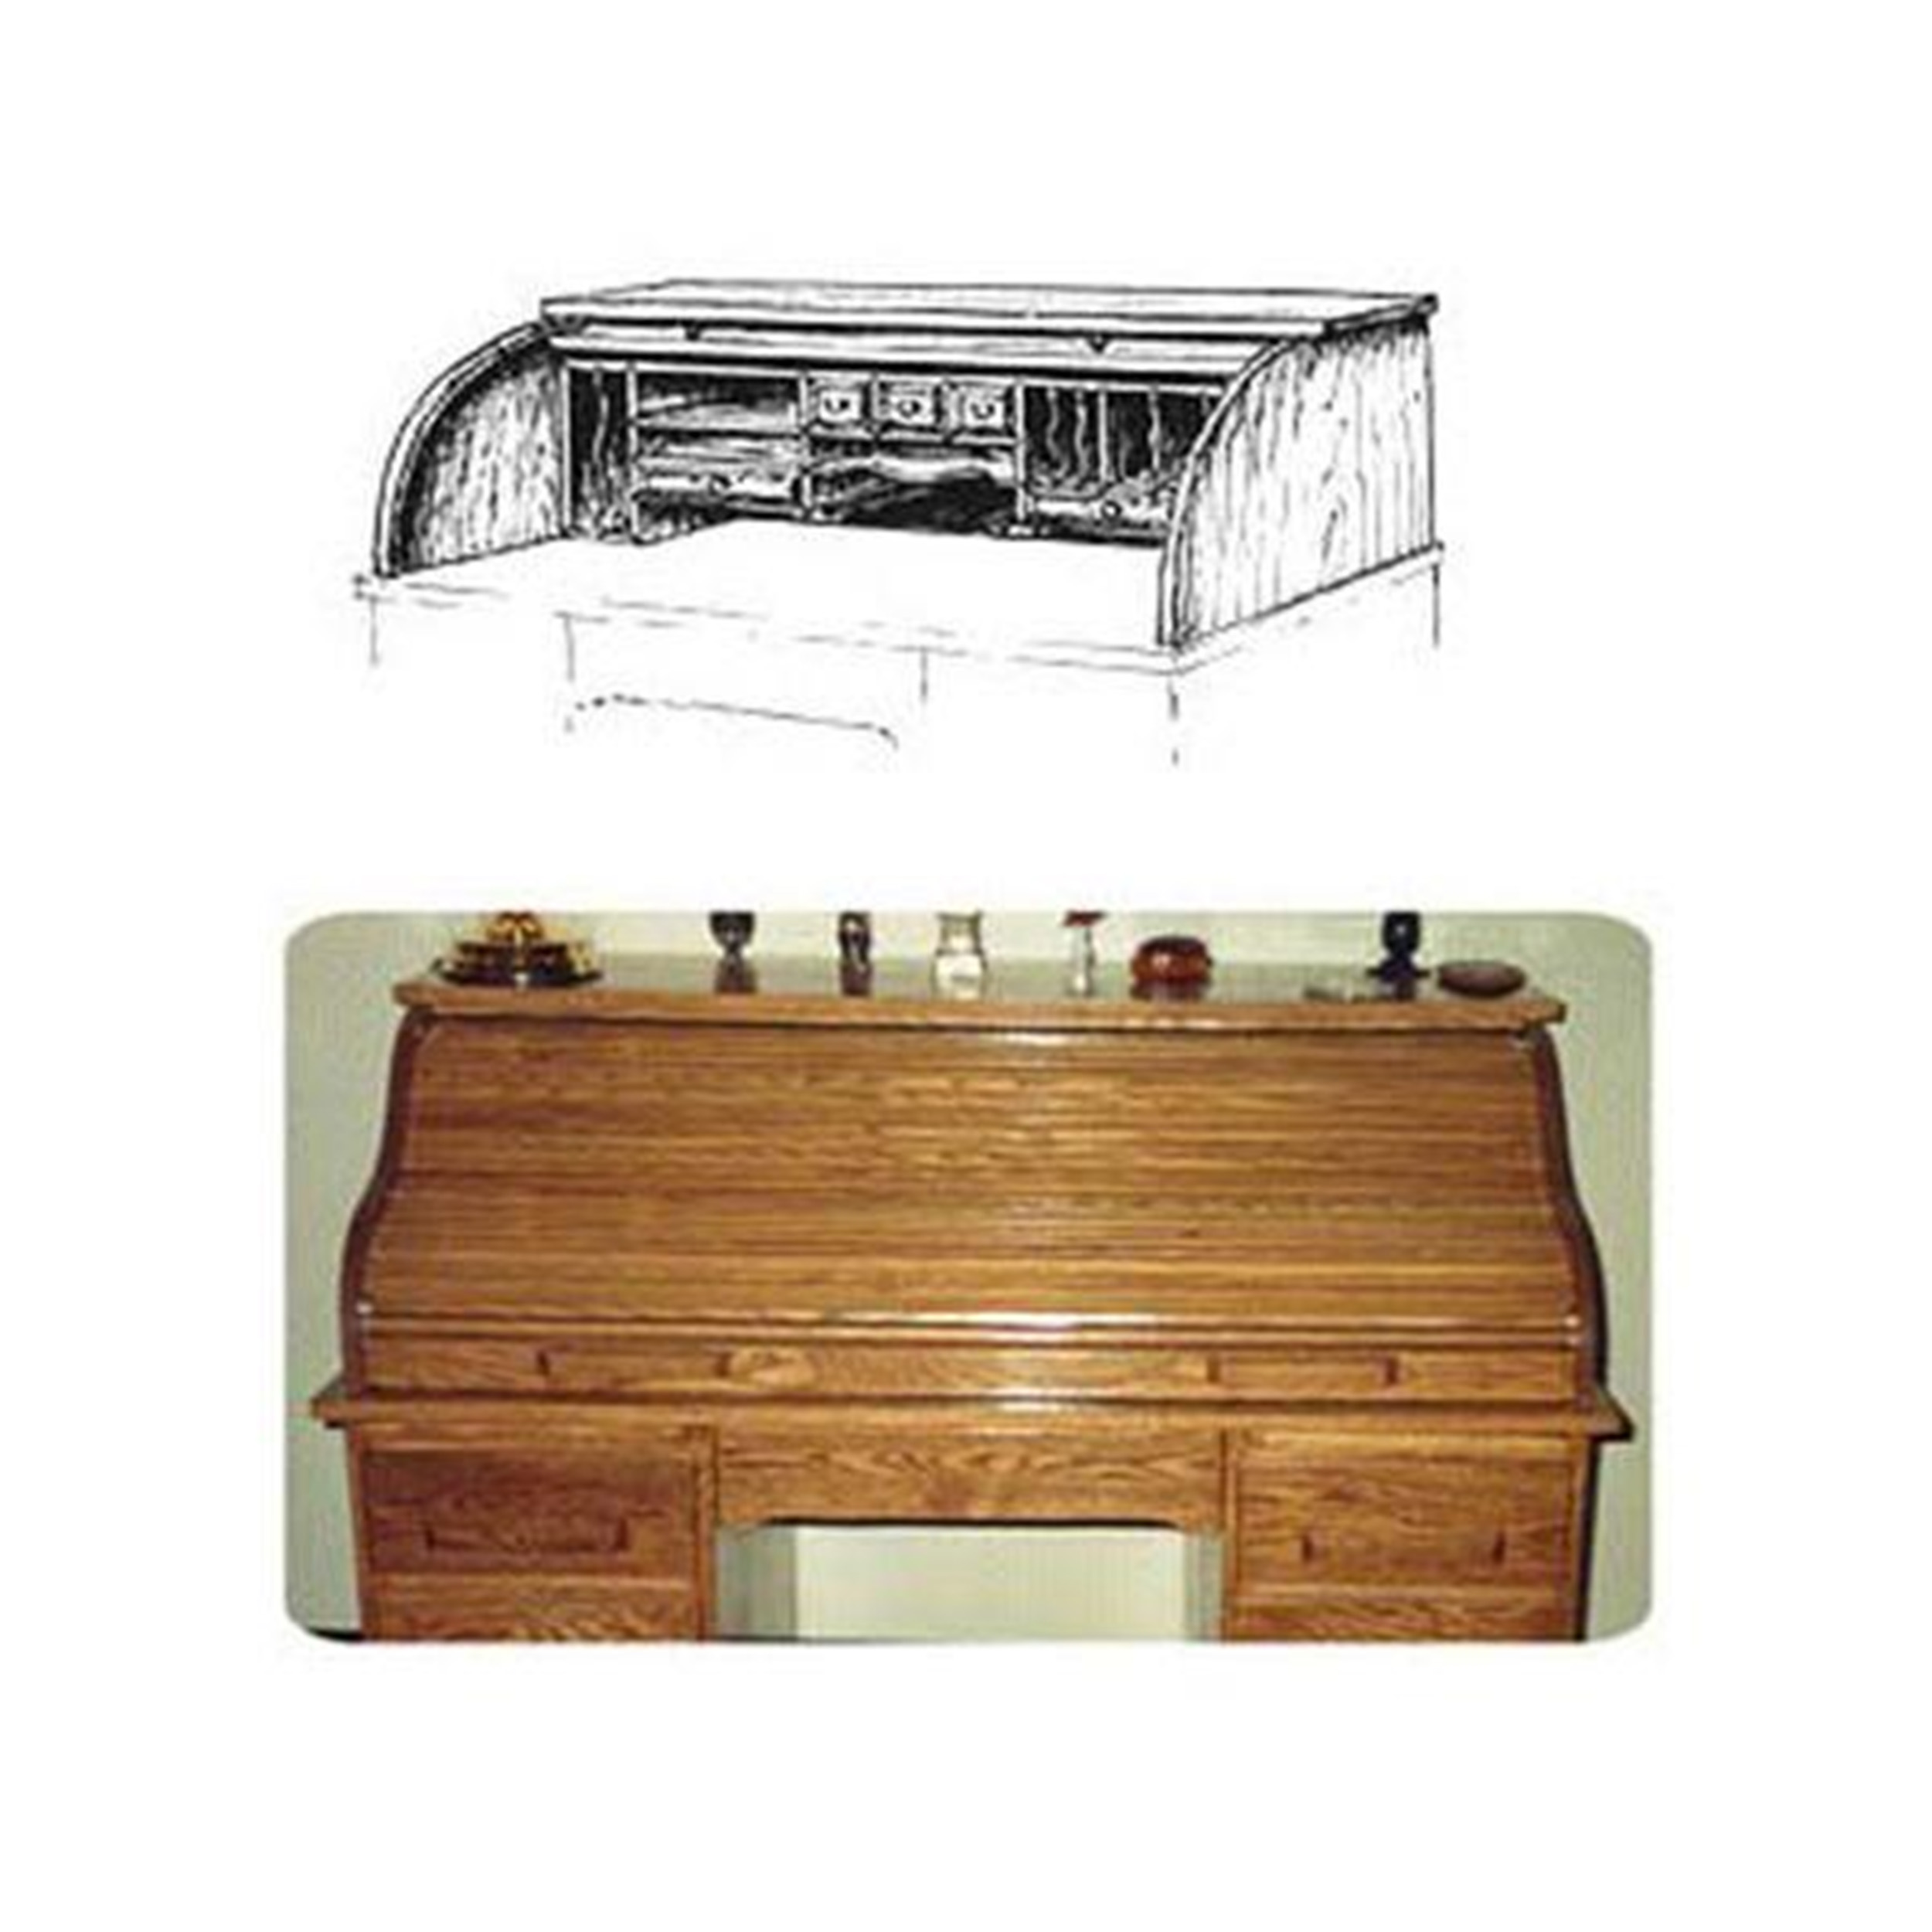 Woodworking Project Paper Plan to Build Roll Top Tambor (Upper Portion)